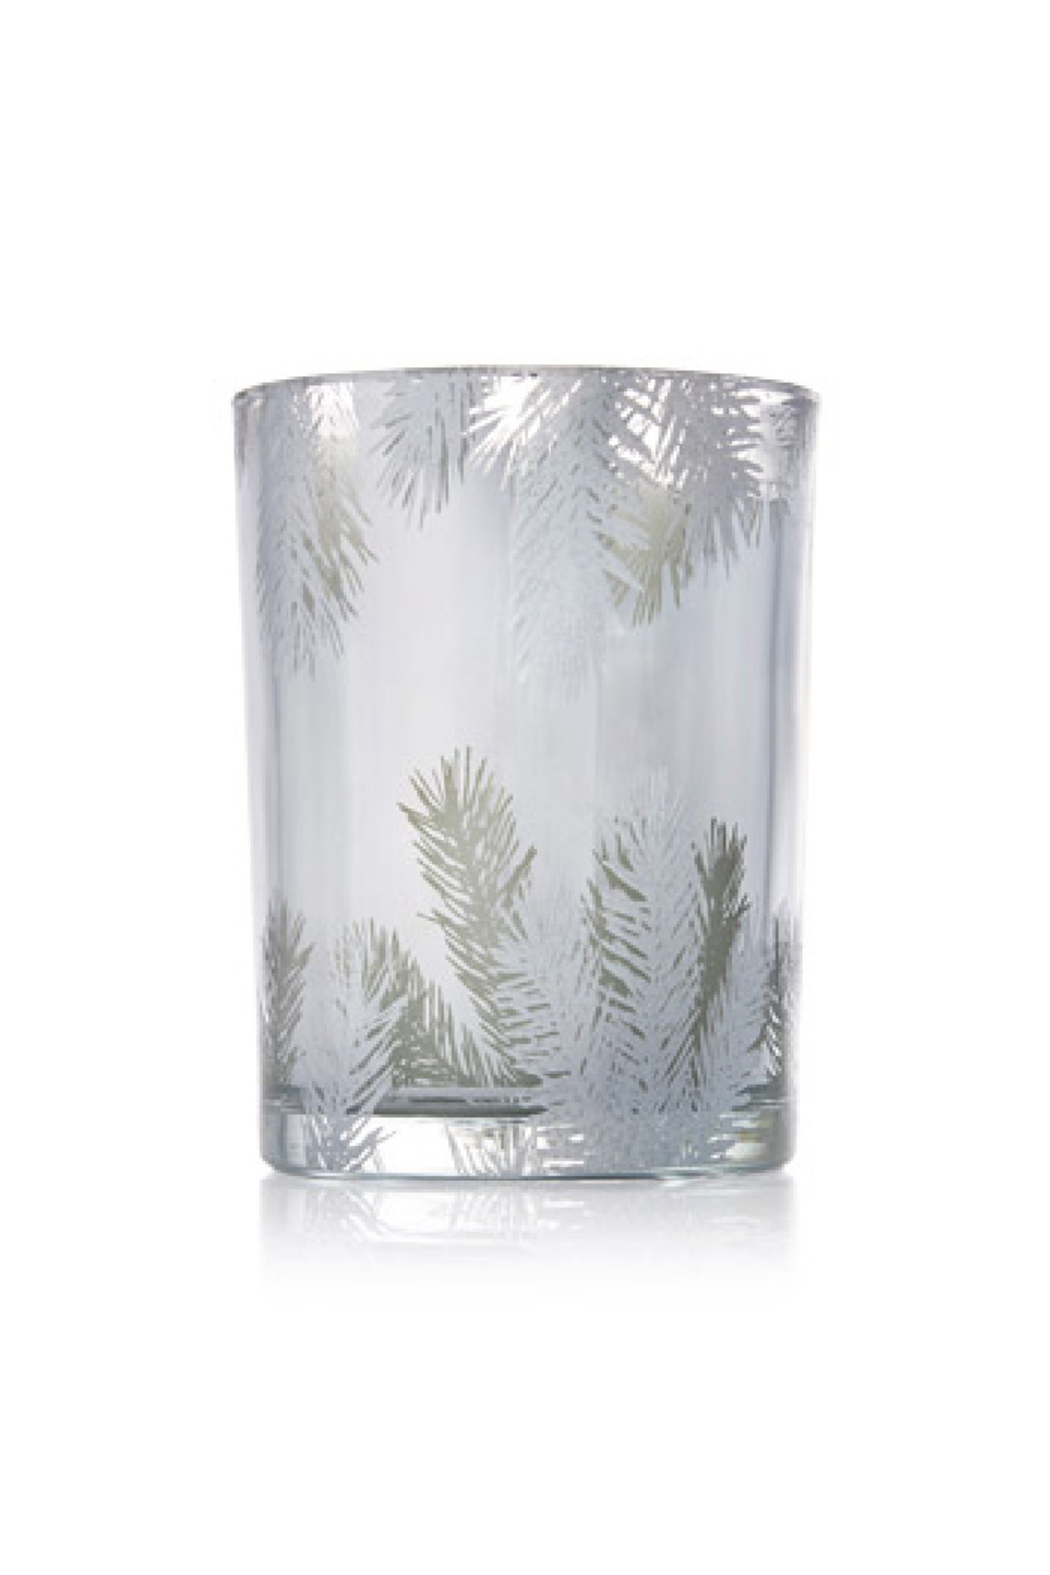 Thymes 8.5 OZ FRASIER FIR STATEMENT LUMINARY POURED CANDLE - Main Image